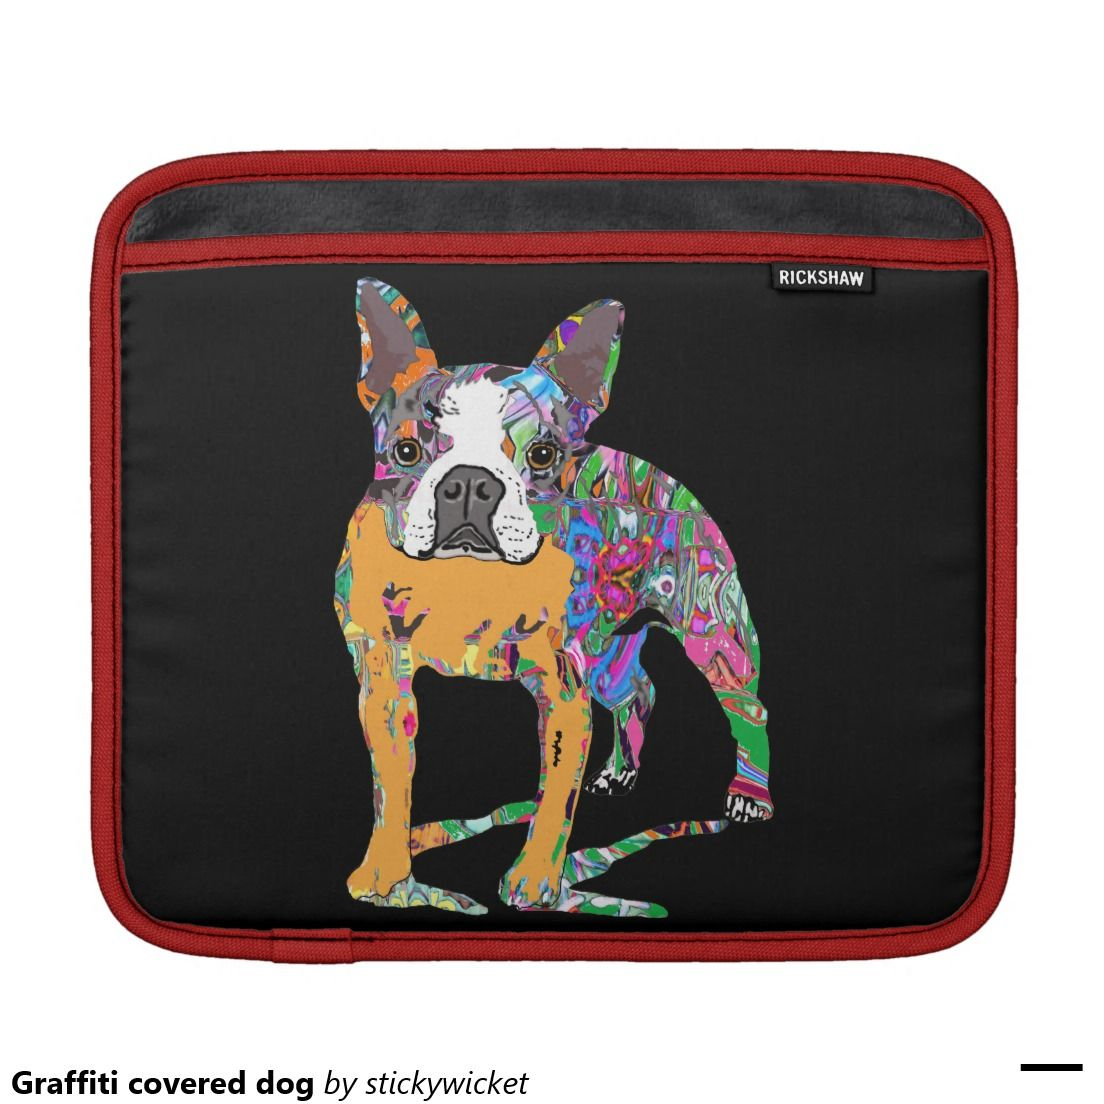 Graffiti covered dog sleeves for iPads